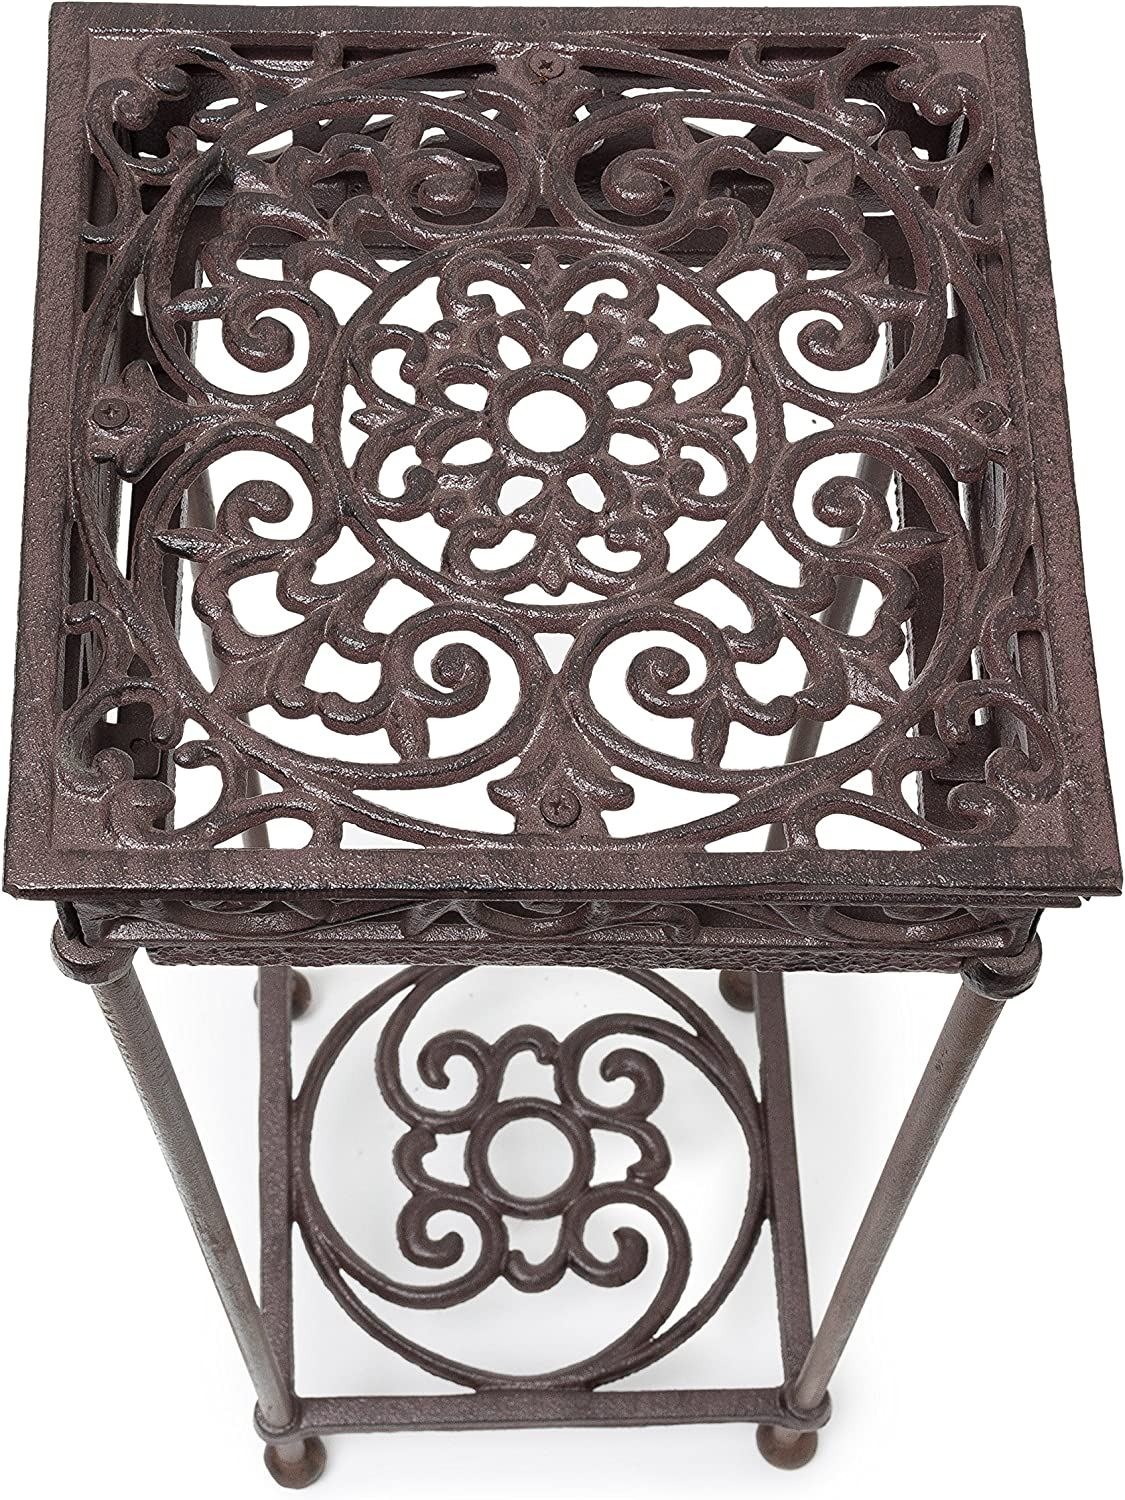 Flower Stand with 2 Shelves for Plants and Decor in the House or Garden Bronze Relaxdays Flower Stand Size M 50.5 x 24 x 24 cm Square Flower Holder made of Cast Iron